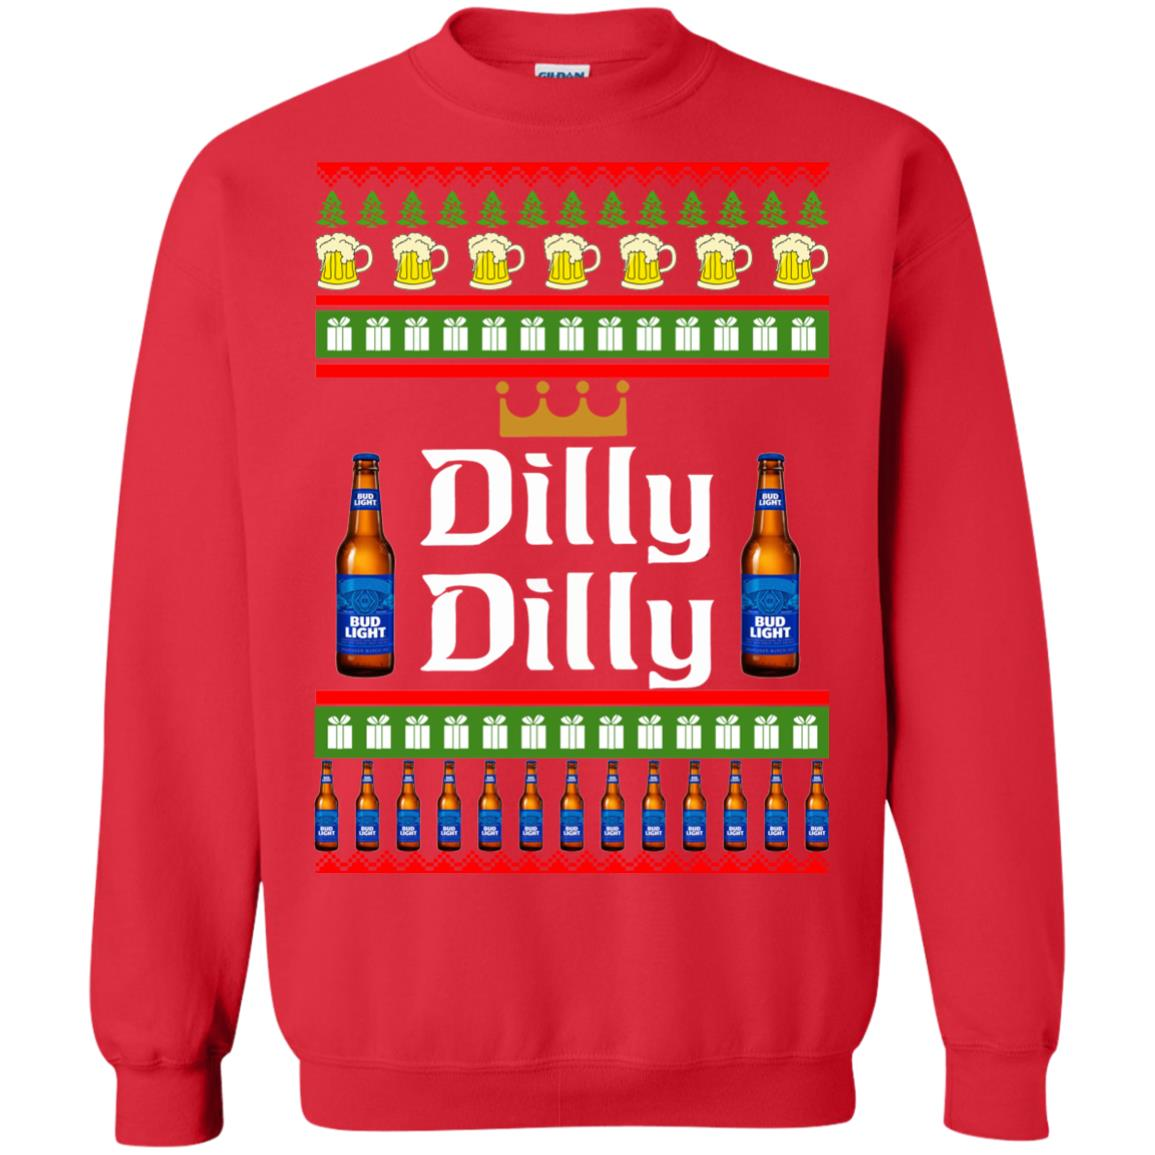 image 4238 - Bud Light: Dilly Dilly Ugly Sweater, Christmas Sweatshirts